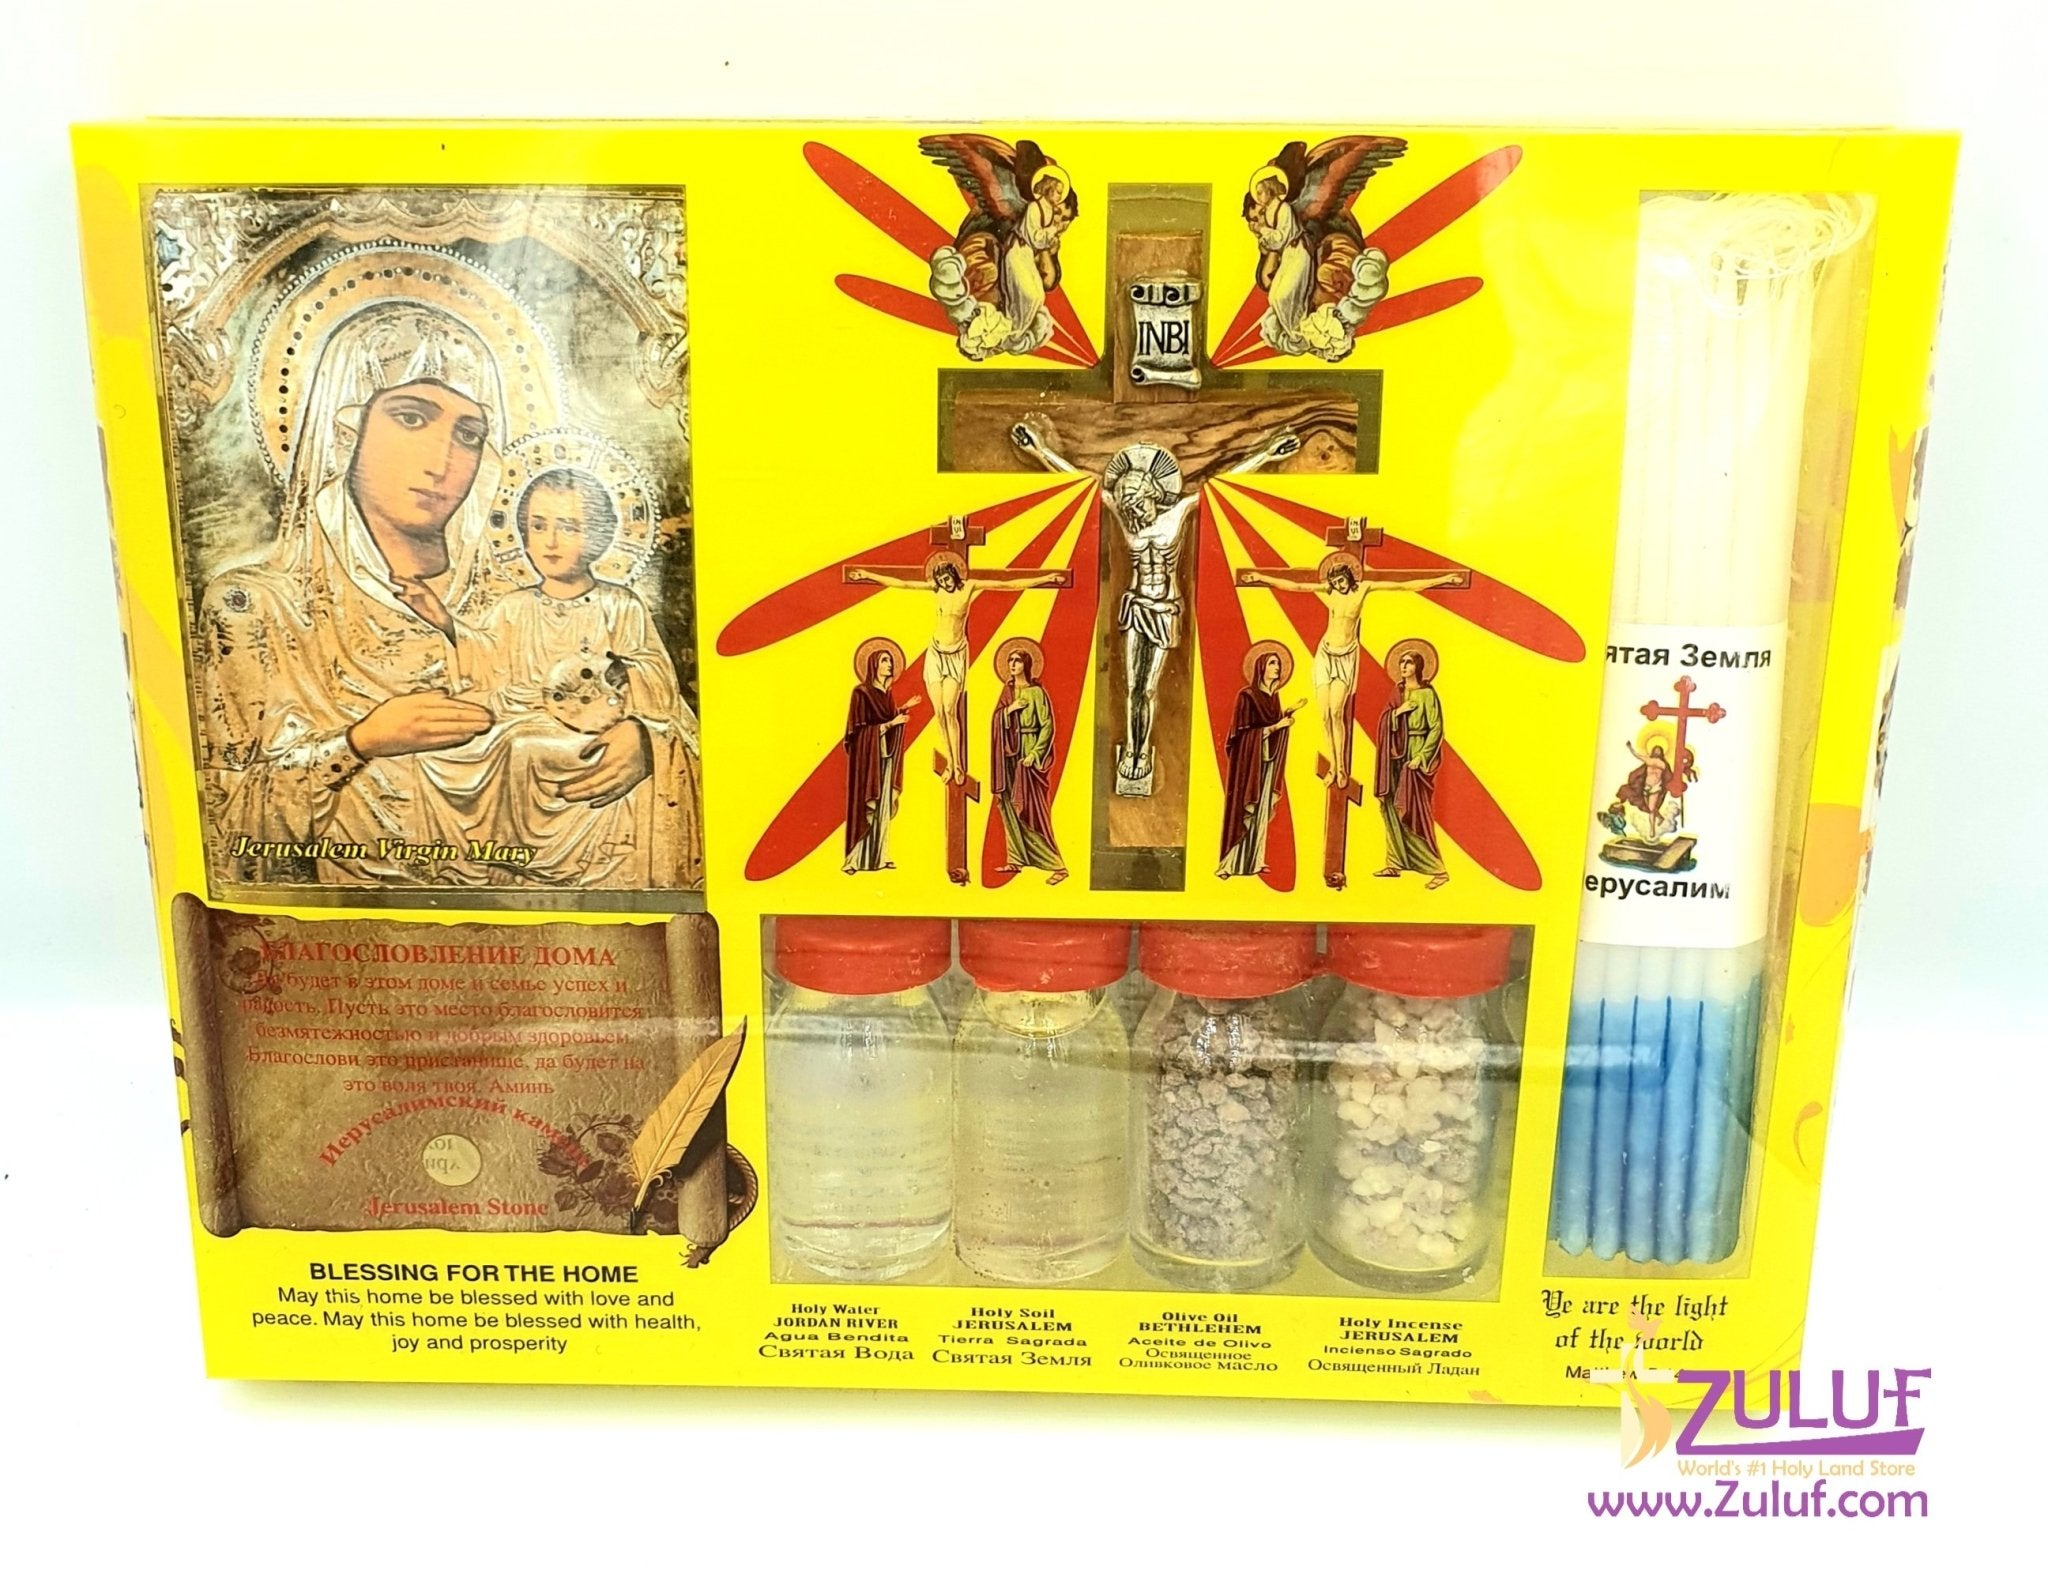 Zuluf Full Orthodox Holy Land Set of blessings Sale - HLG002 - Zuluf